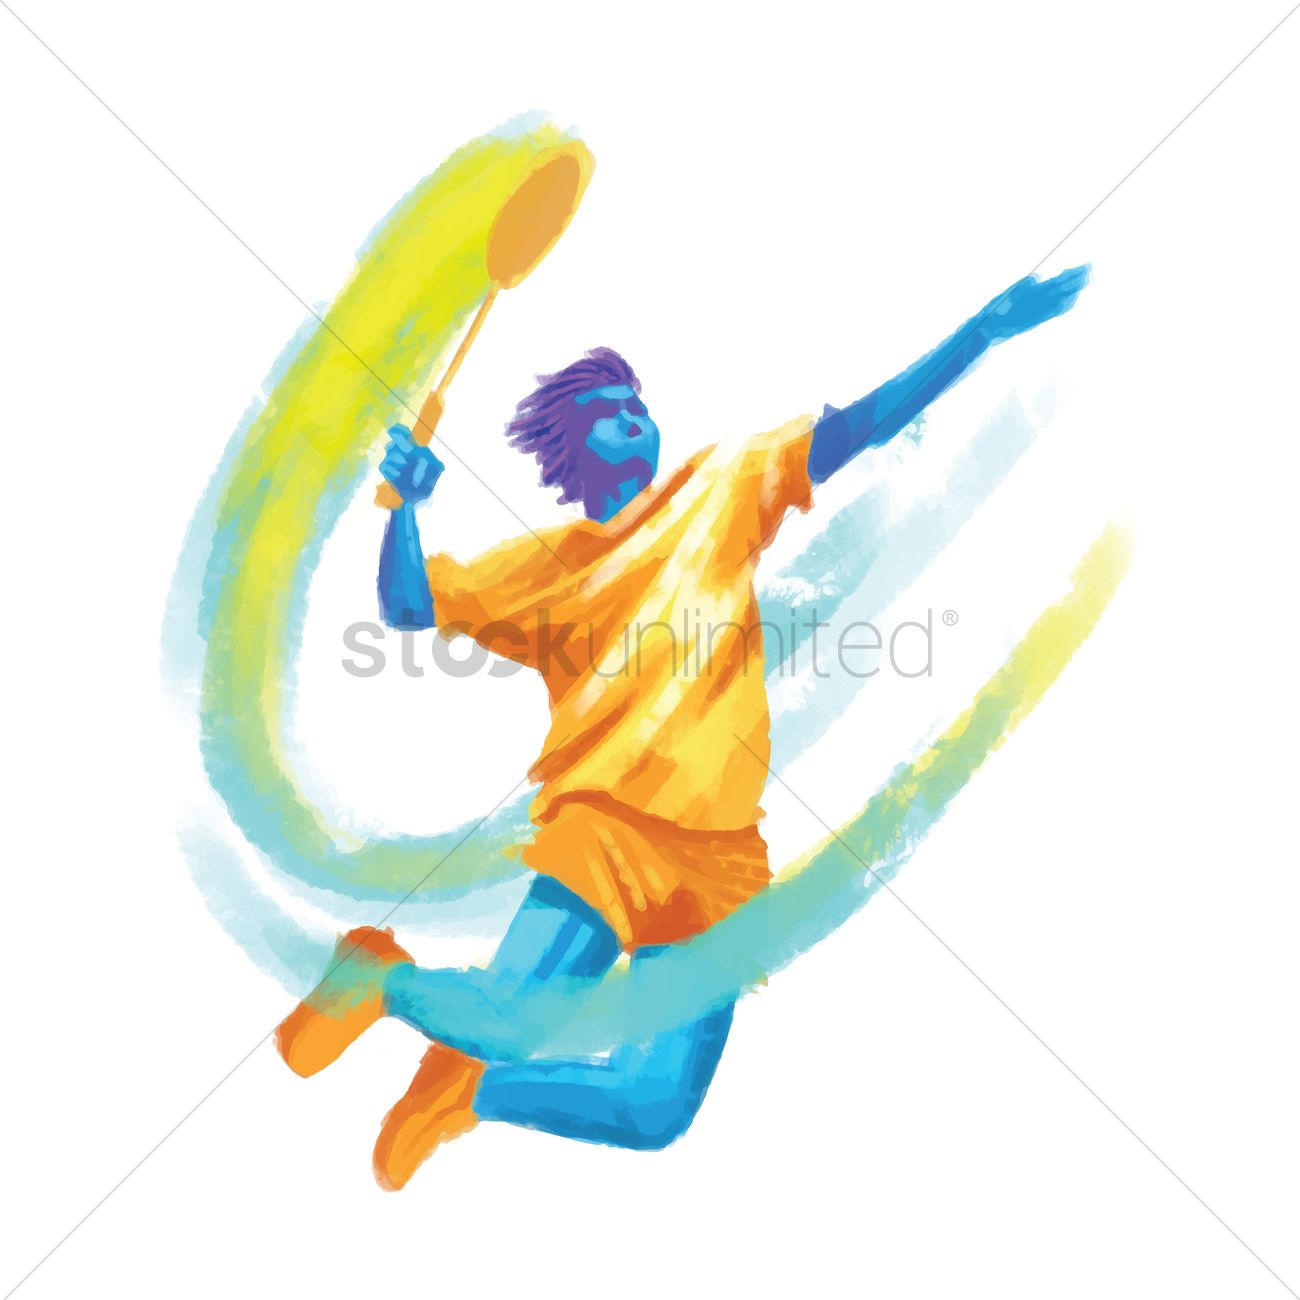 1300x1300 Sports Competition Badminton Vector Image